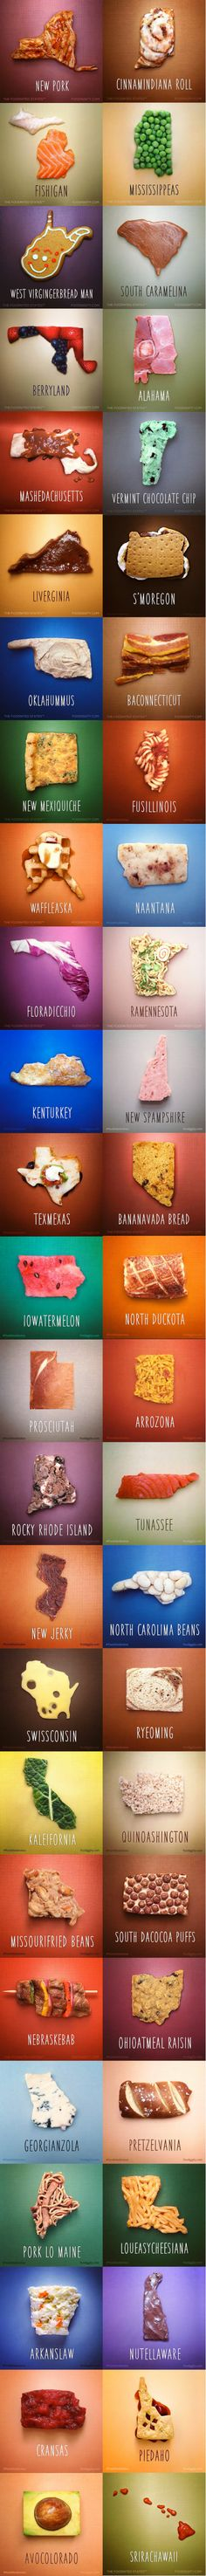 All 50 States Reimagined as Food Puns